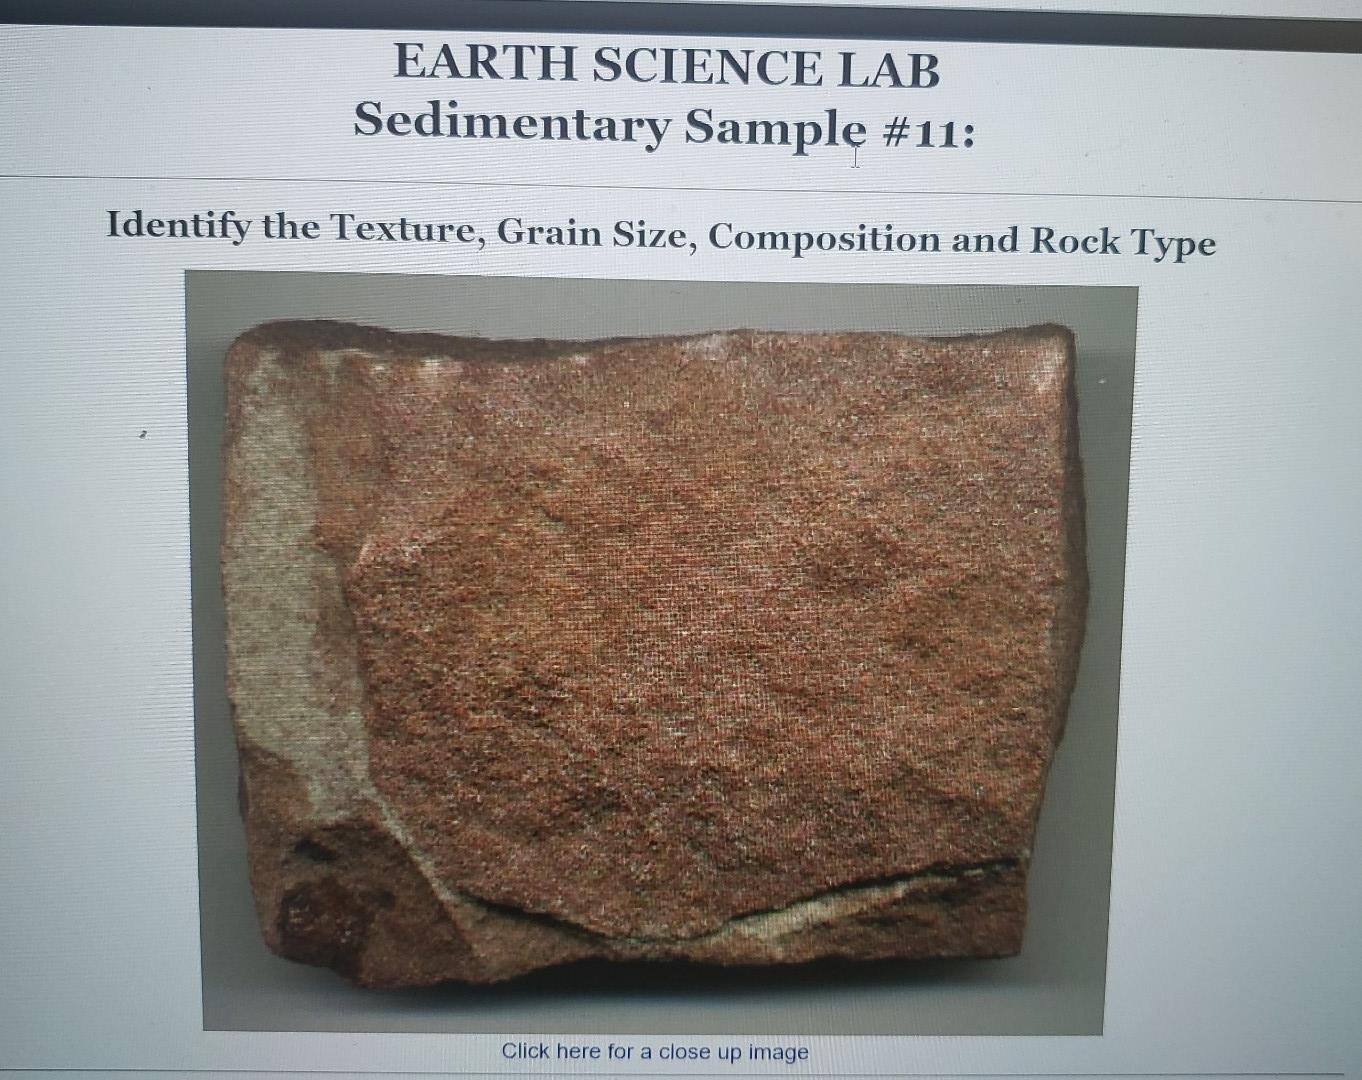 EARTH SCIENCE LAB Sedimentary Sample #11: Identify the Texture, Grain Size, Composition and Rock Type Click here for a close